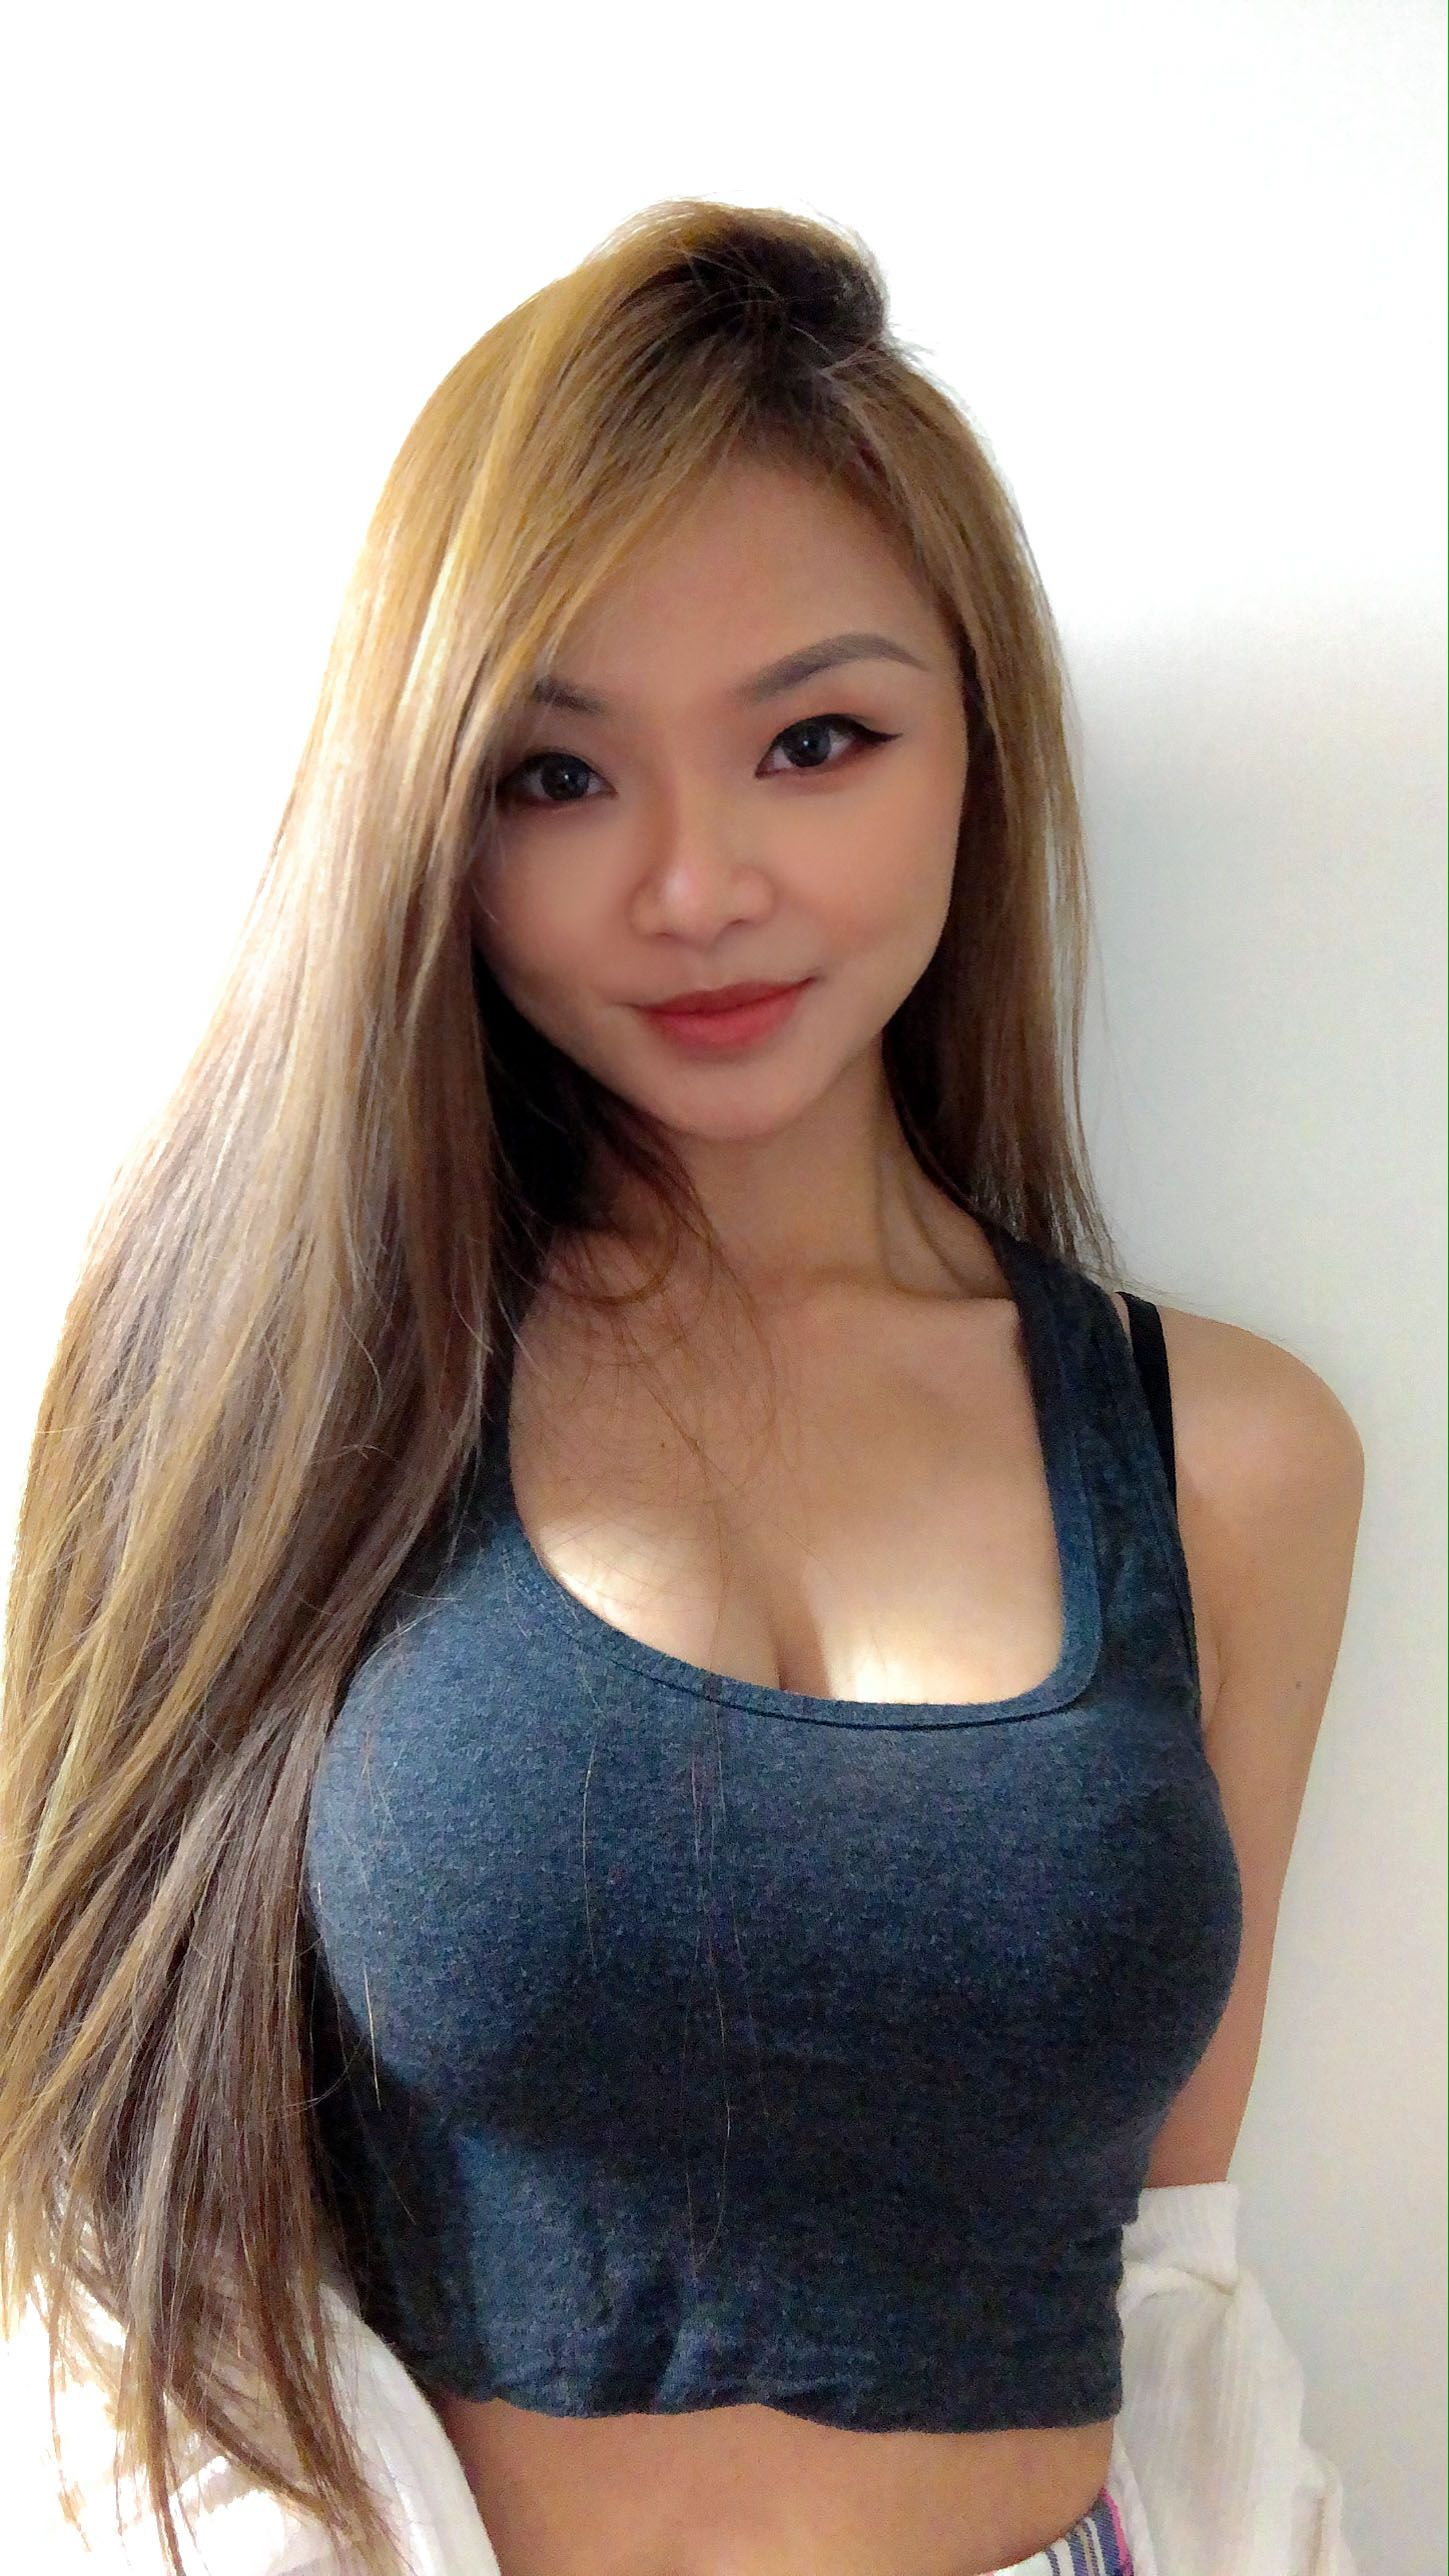 Pin on Asian Beauties and Hotties 1